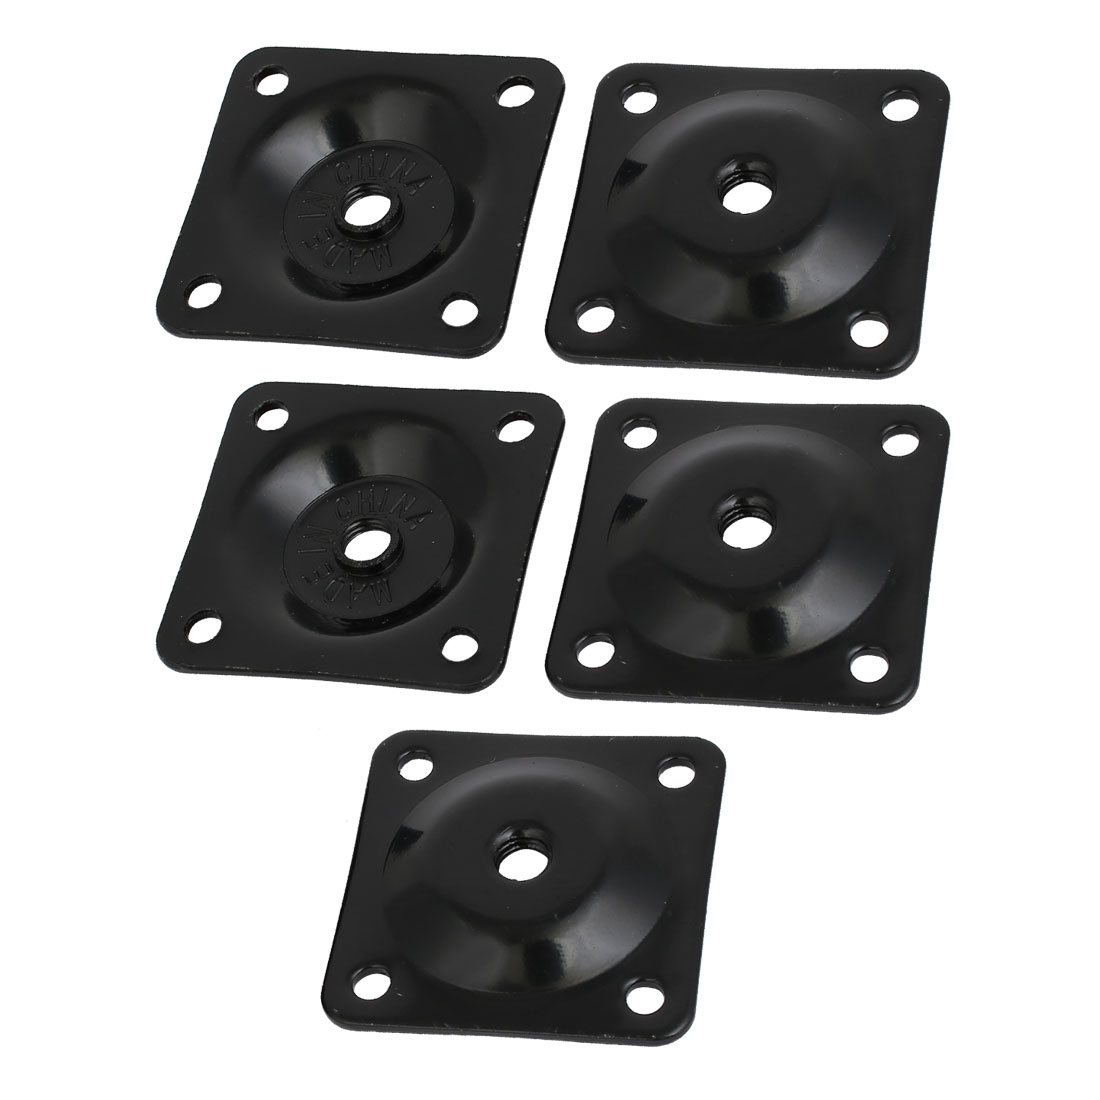 48mmx48mmx2mm Iron Table Leg Mounting Plates Black 5pcs